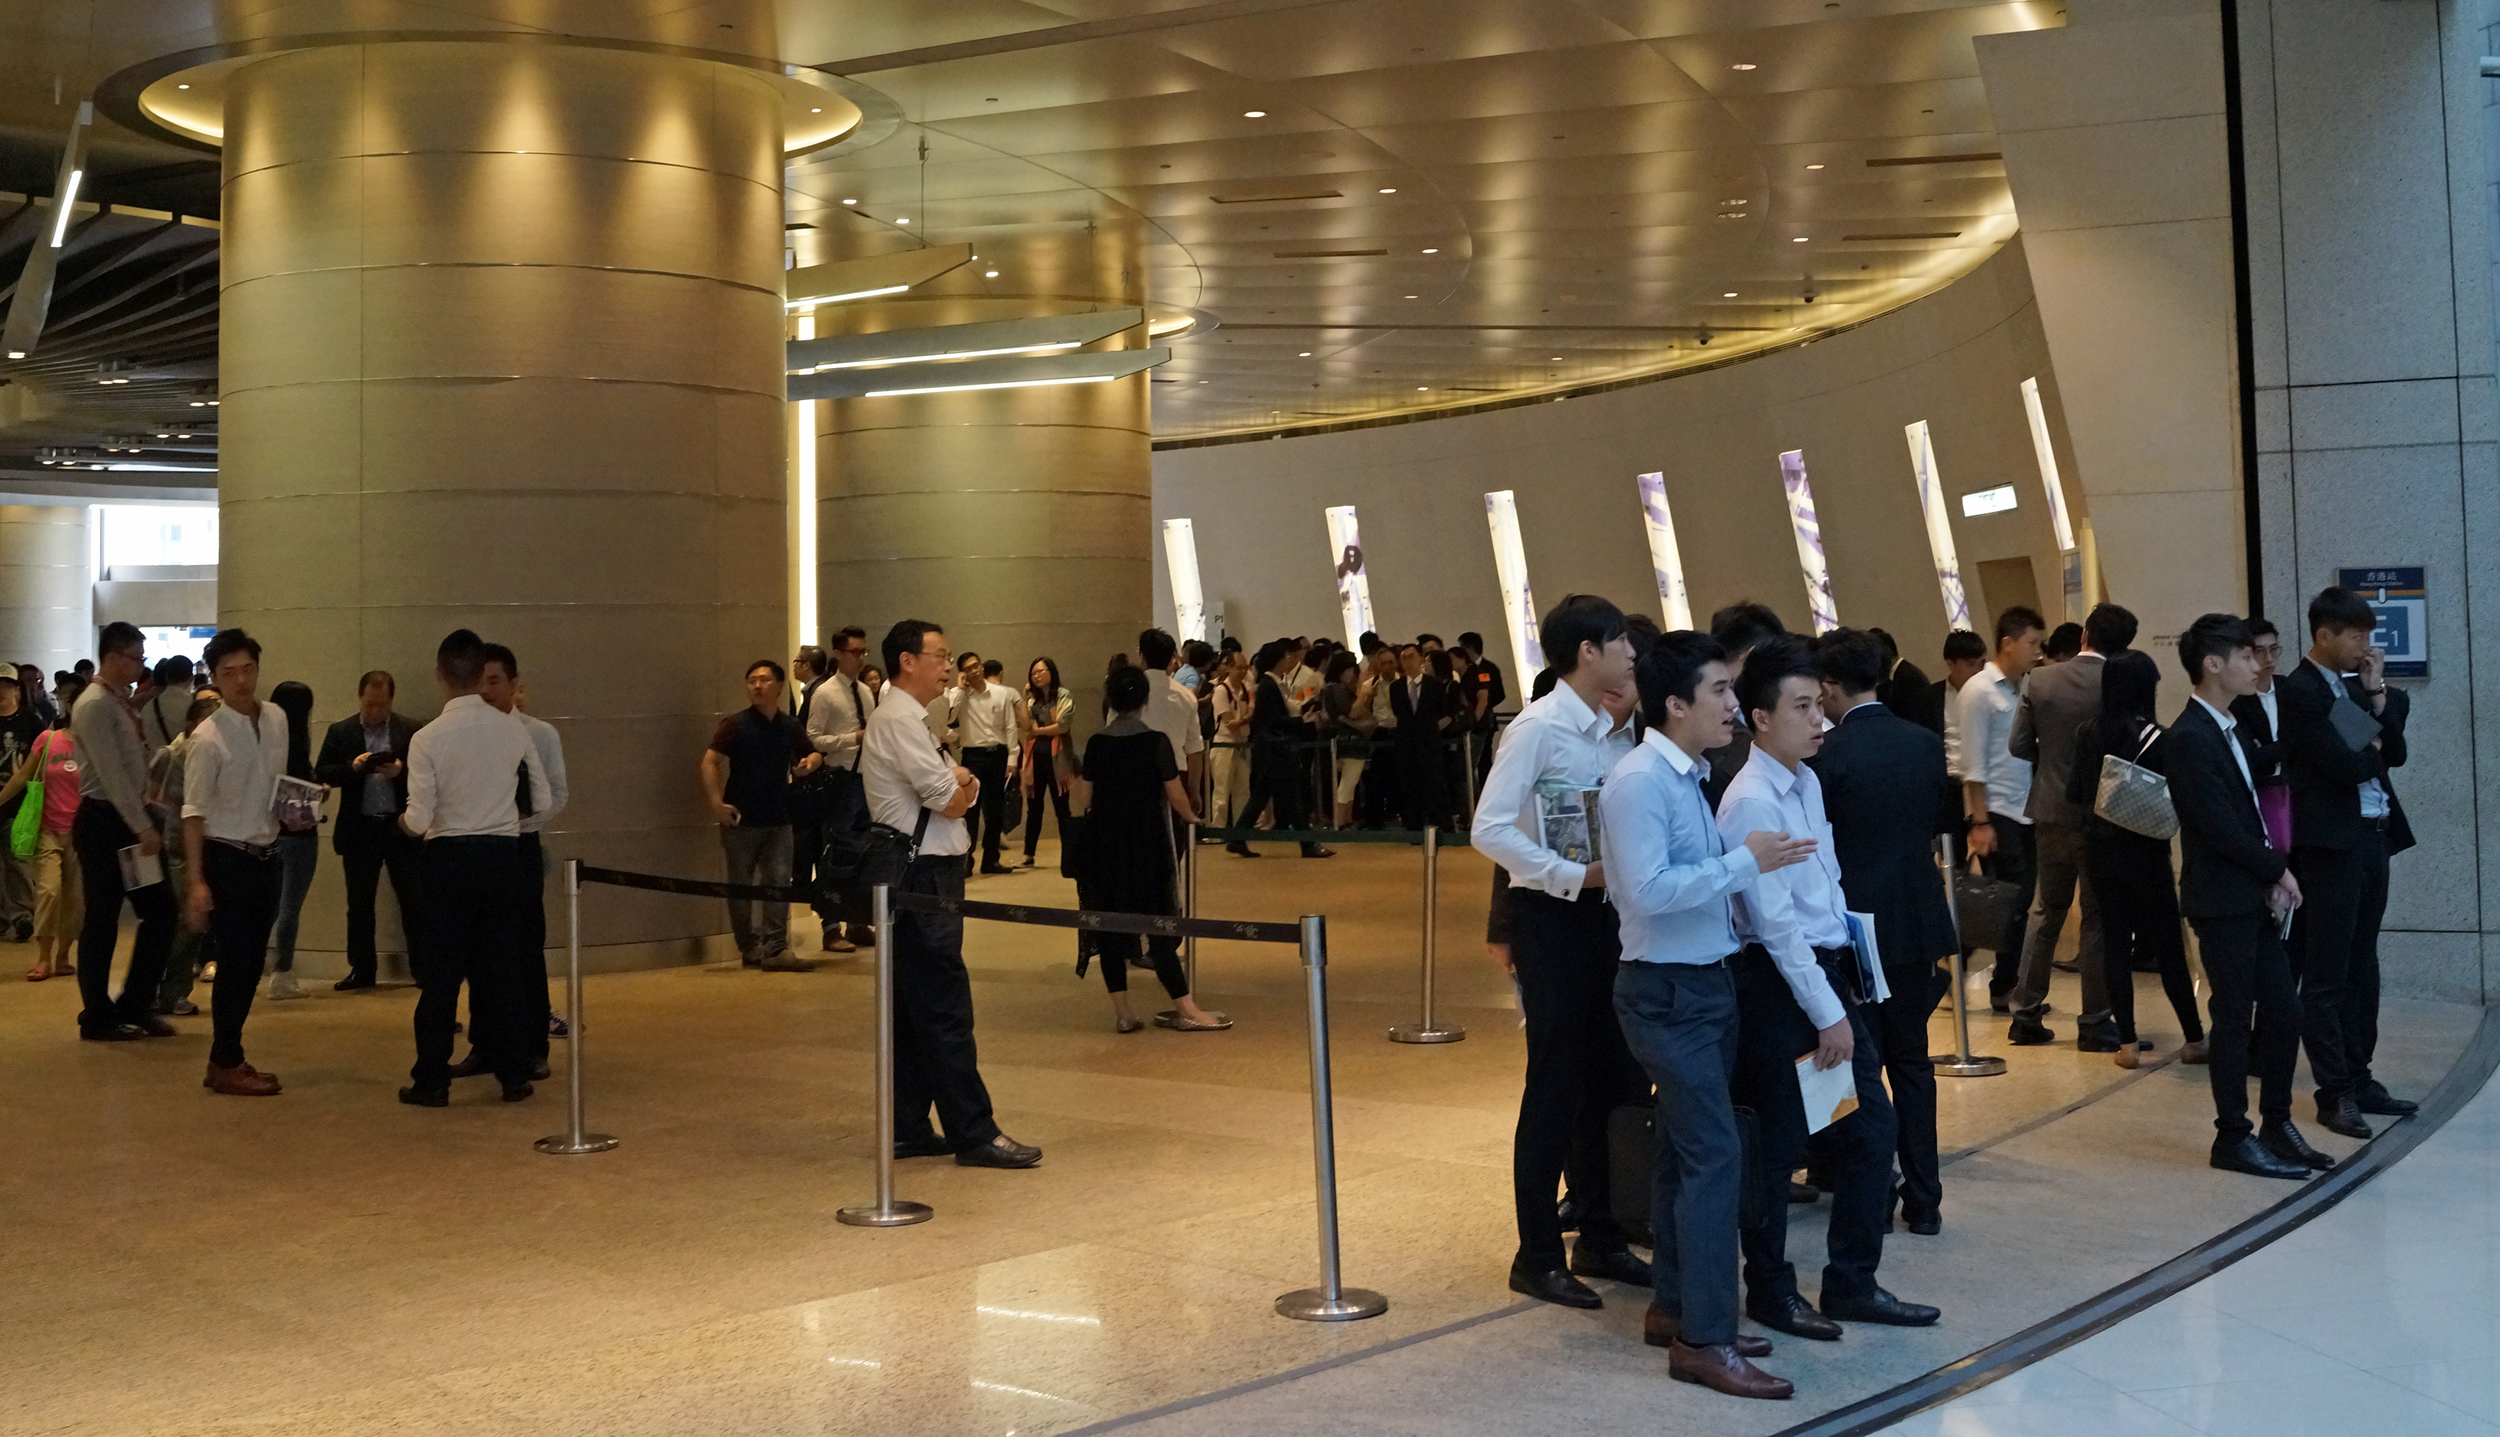 Like a swarm of locusts, young property agents wait for potential clients to come out of IFC Mall (one of our finest malls) - I wouldn't trust these people as far as I could spit and many of them have not learnt to shave yet.